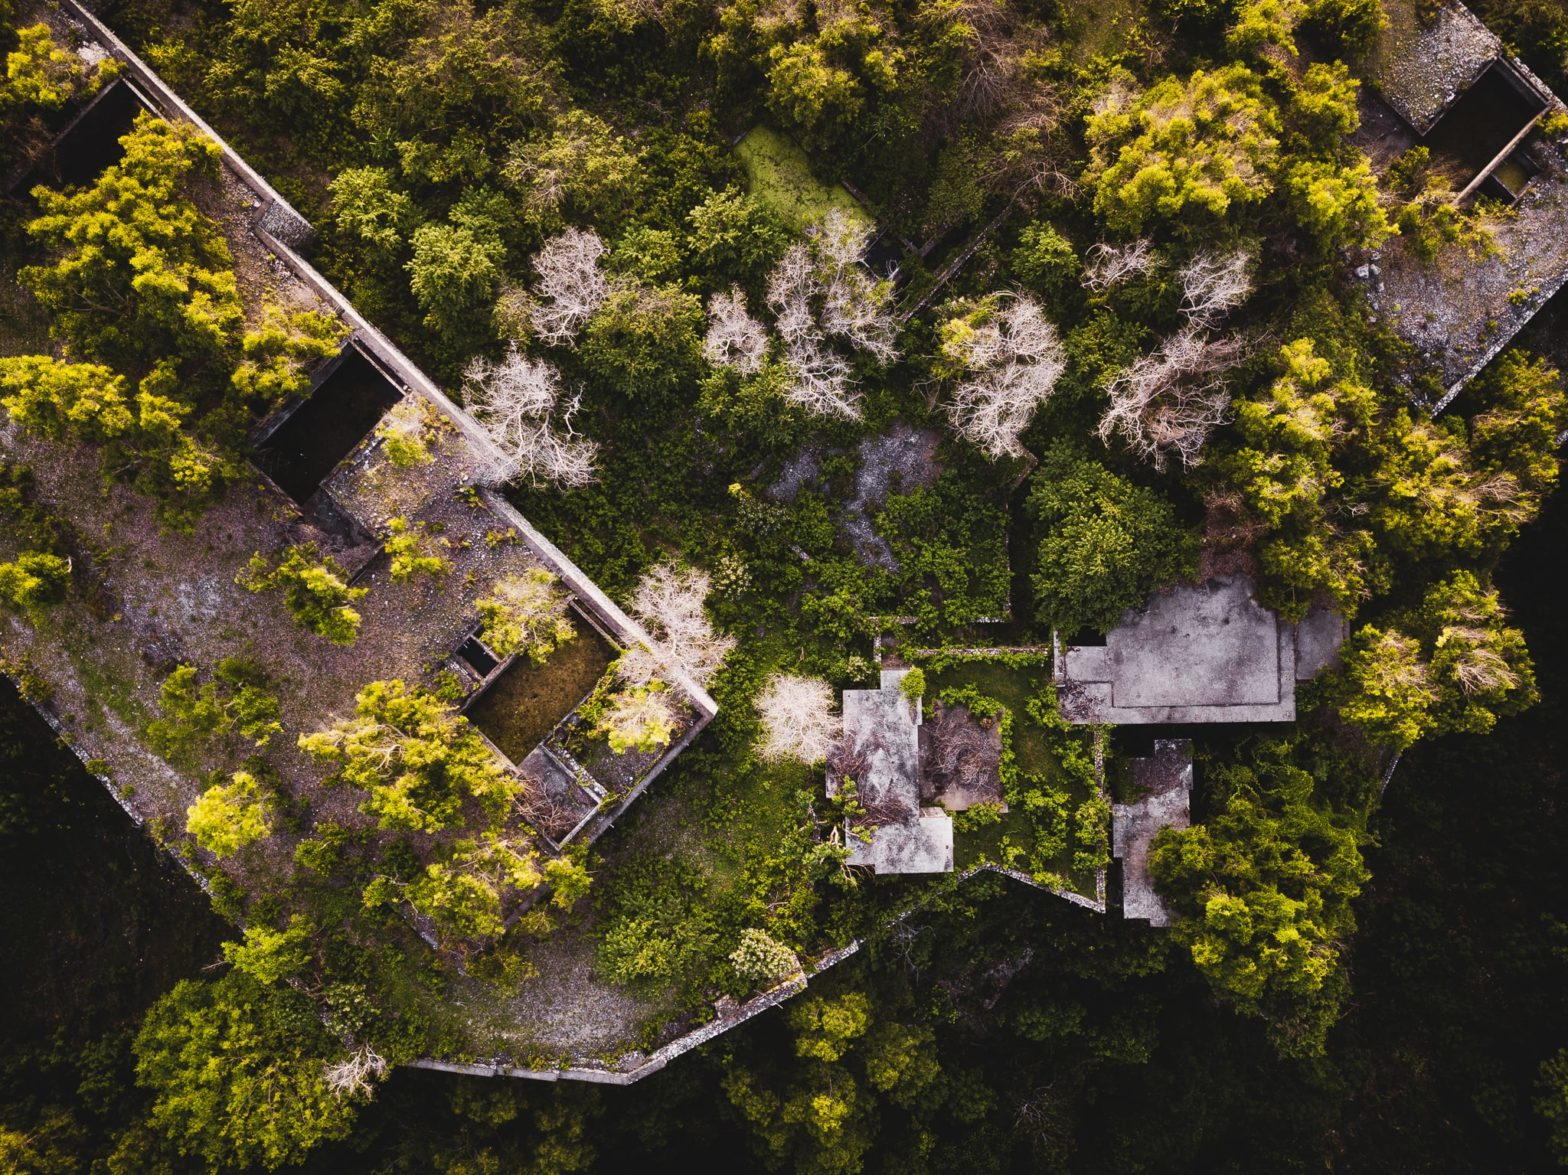 Aerial view of an unfinished tropical resort taken over by nature